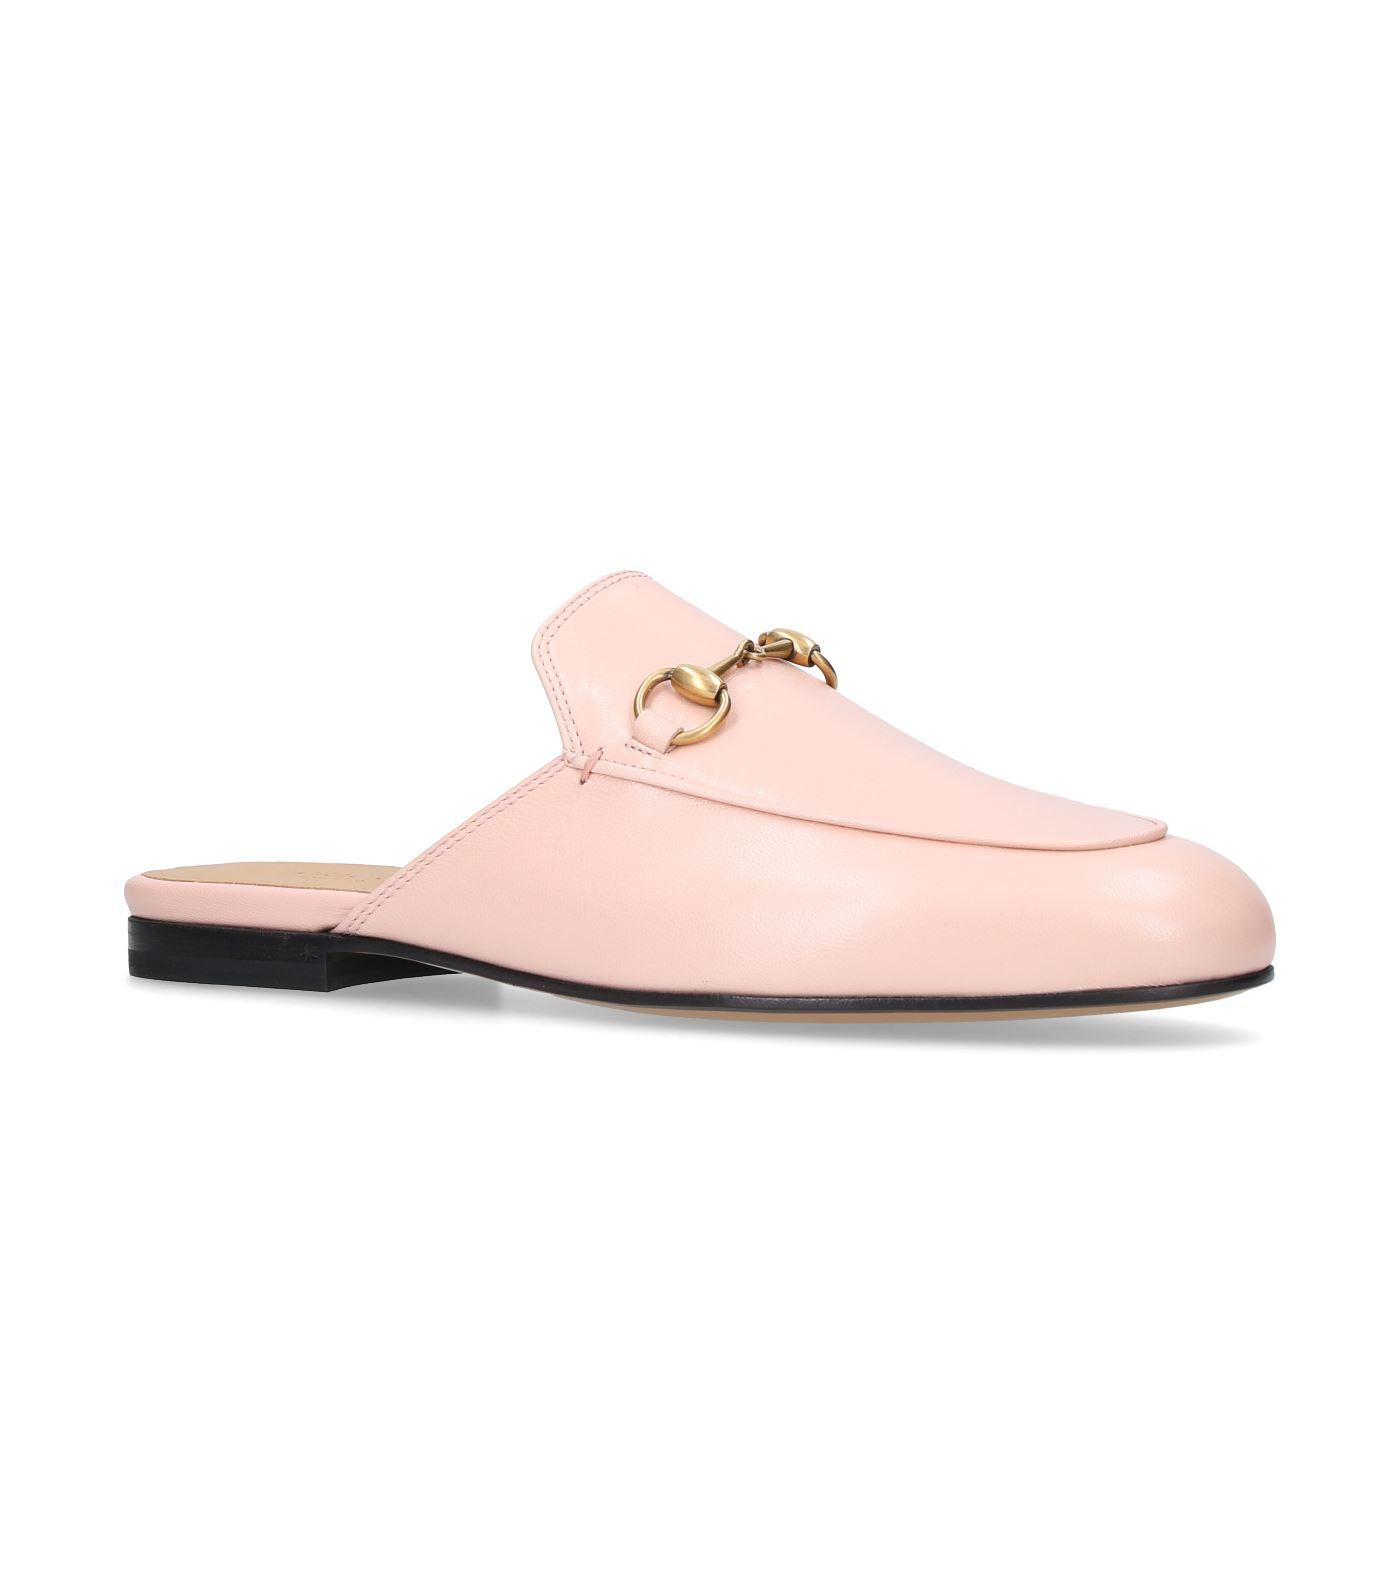 e98adad9049 Lyst - Gucci Princetown Leather Backless Loafers in Pink - Save 22%